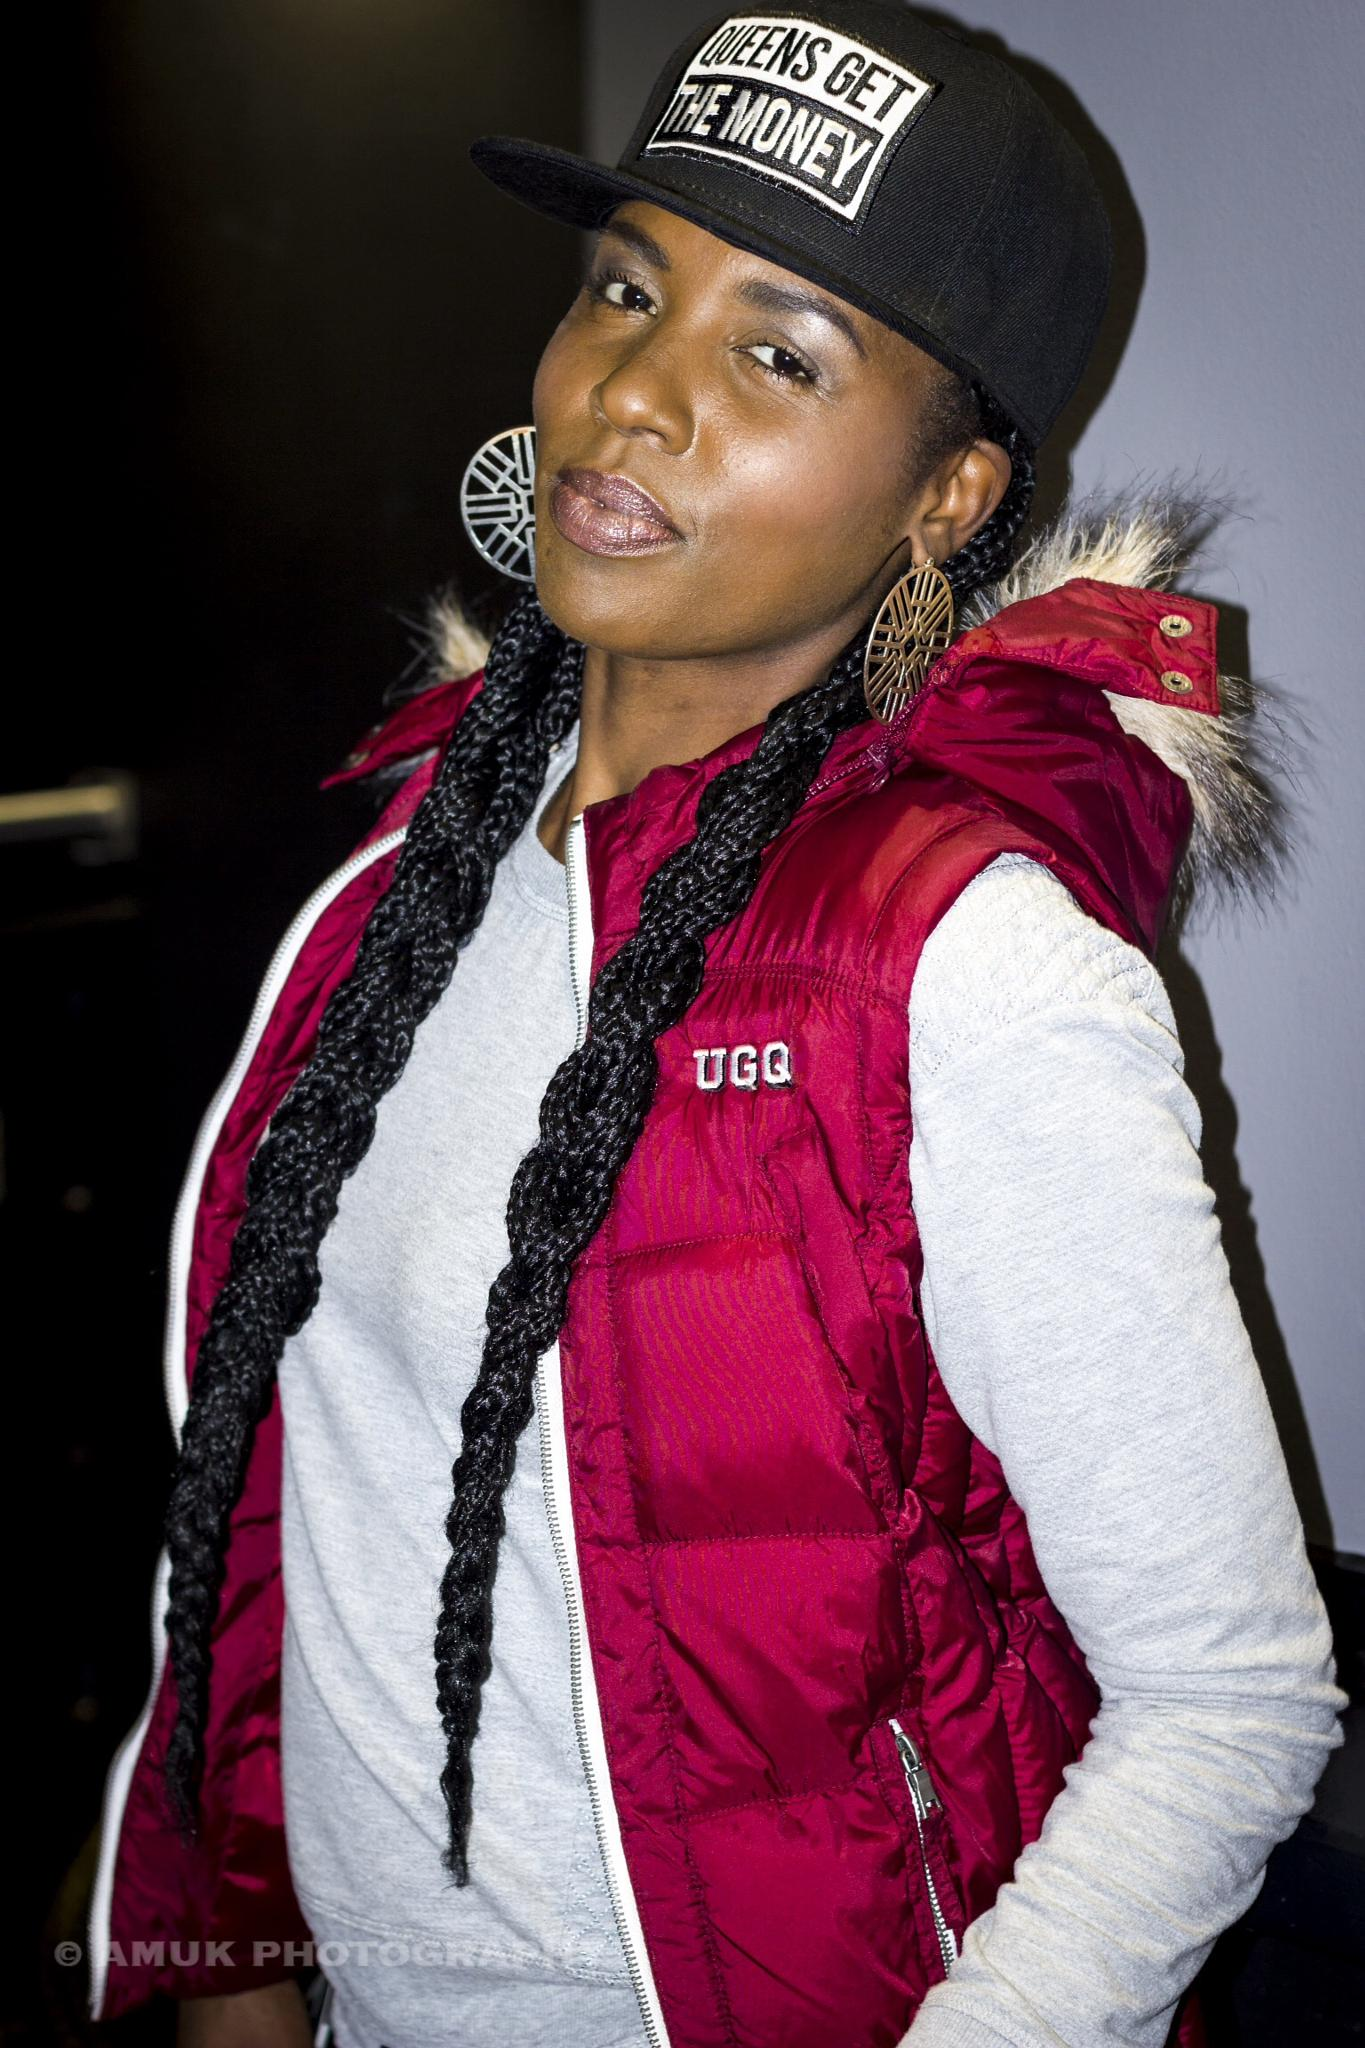 Female Rapper/Artist  by AMUK PHOTOGRAPHY